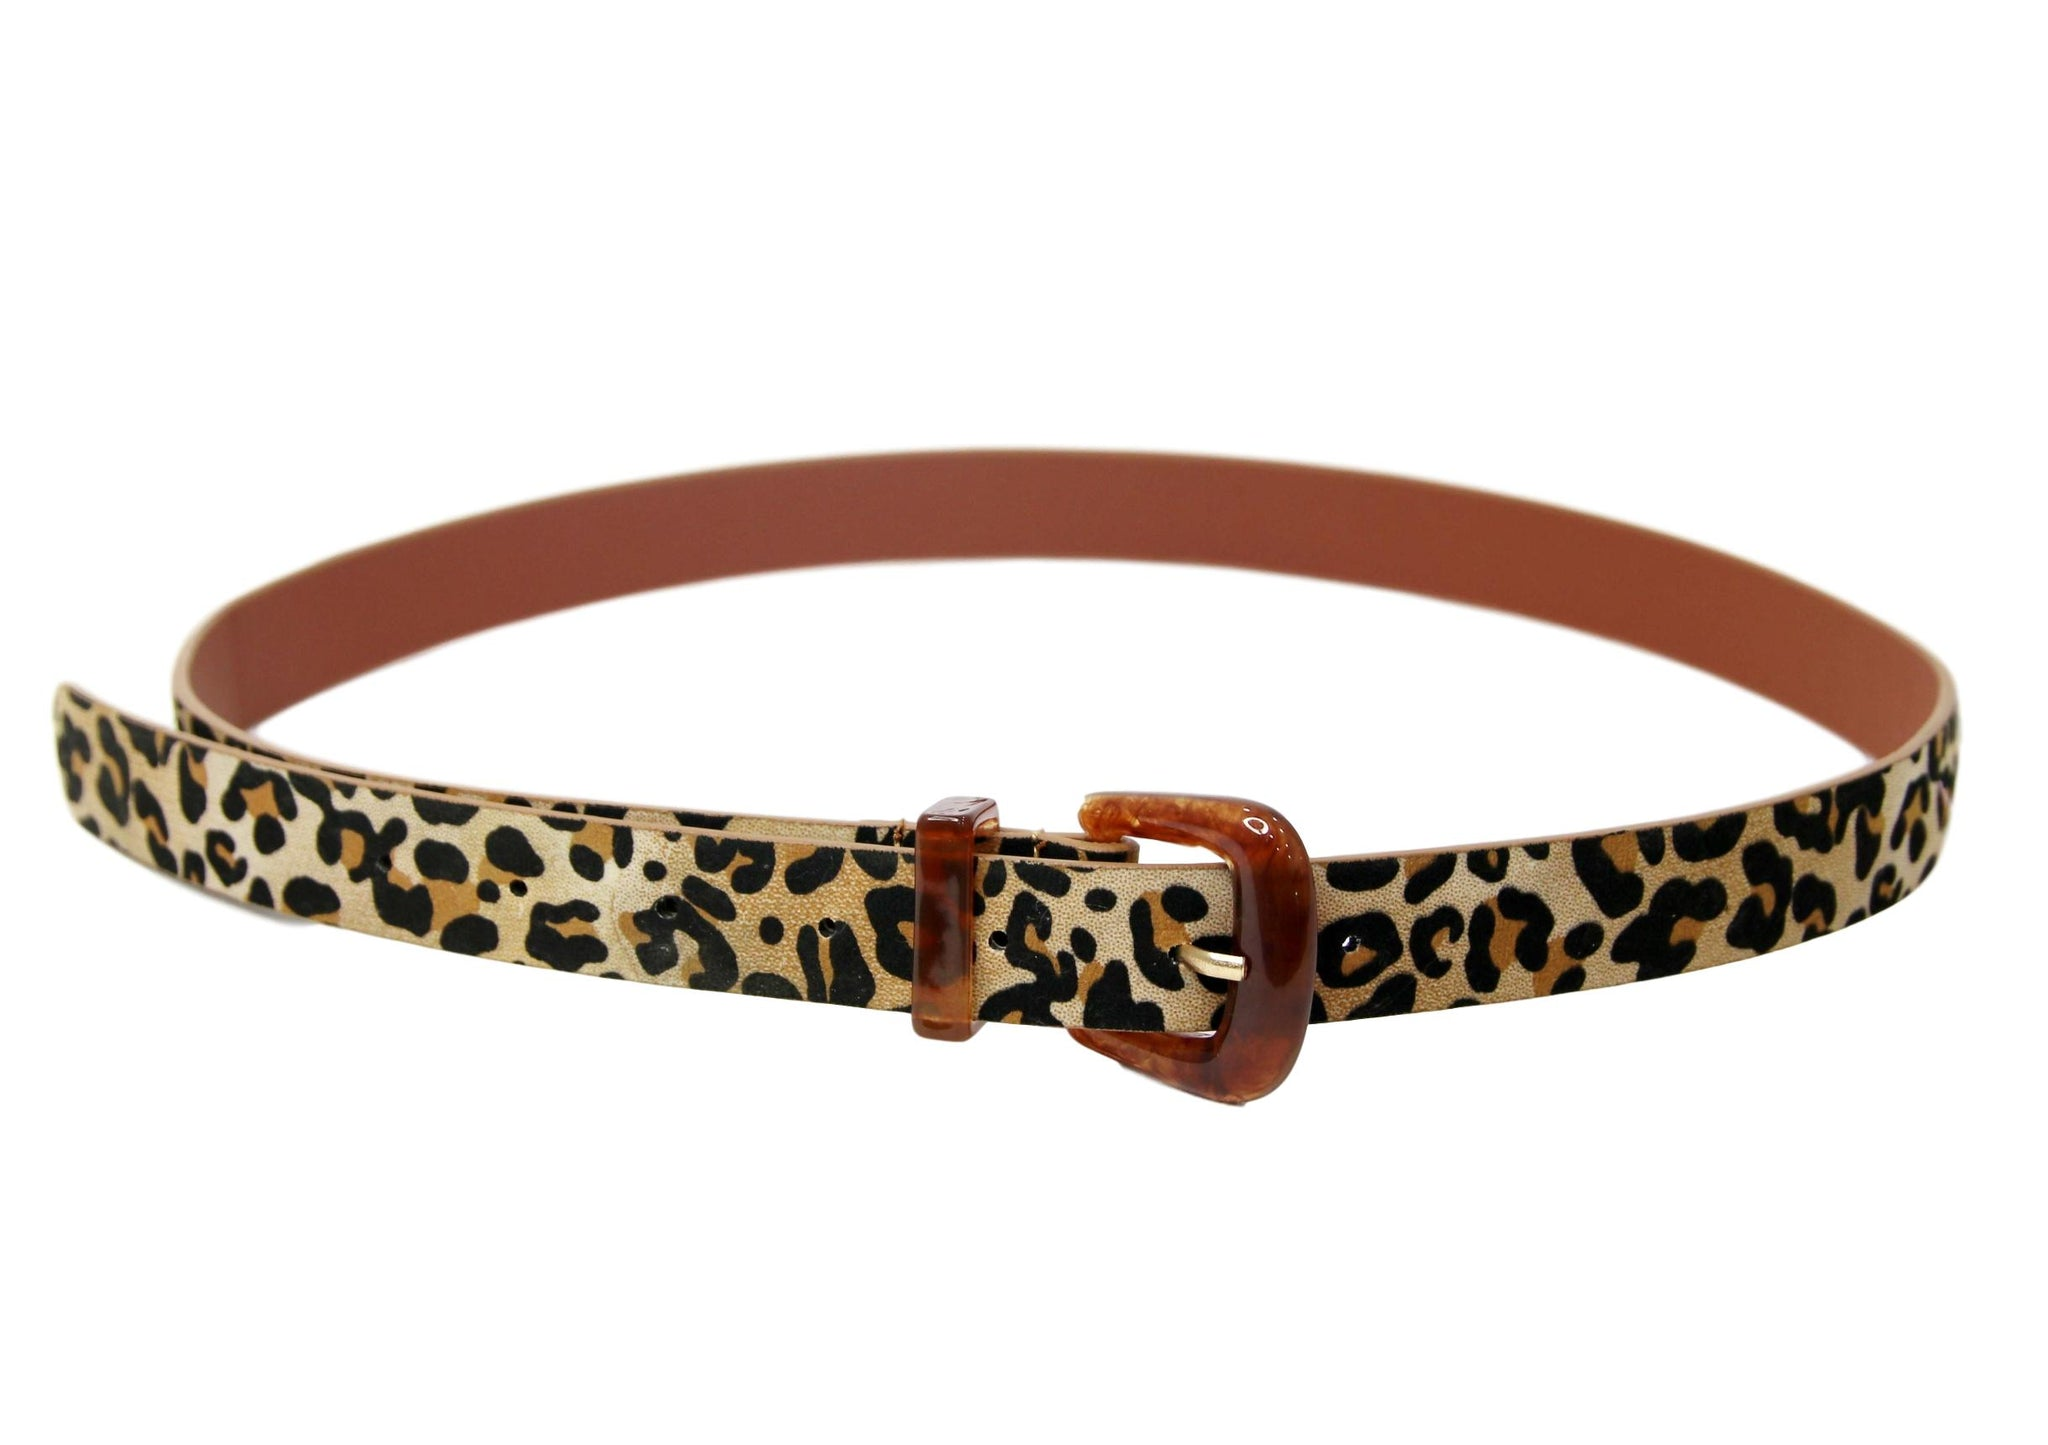 PU Resin Buckle belt Leopard